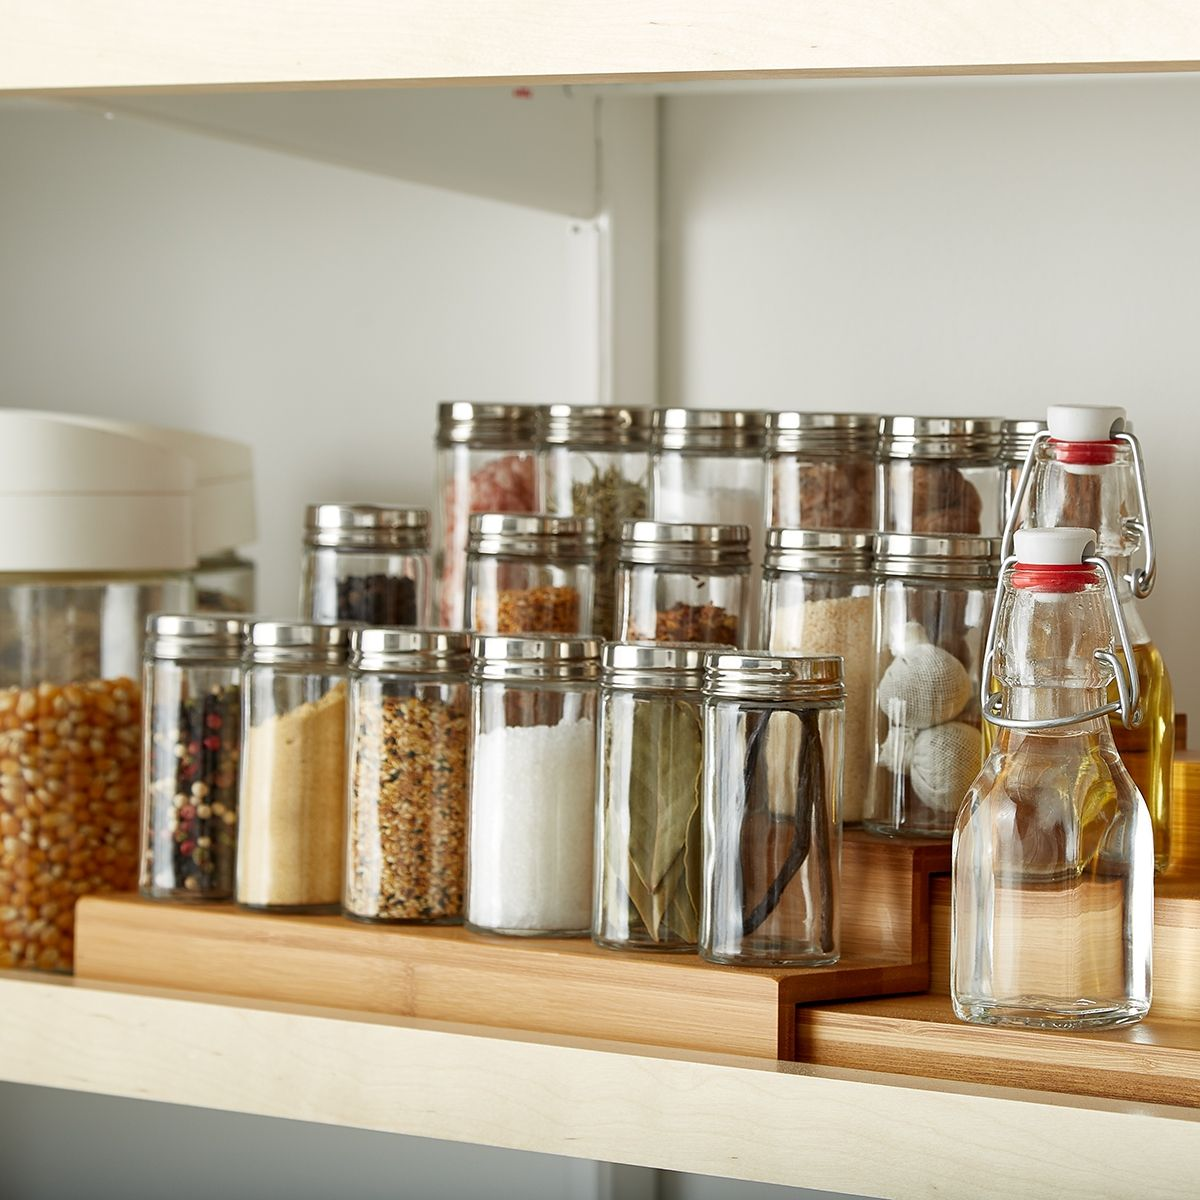 Woodworking Plans For Kitchen Spice Rack: Our Solutions For Storing Your Seasonings Help Prolong The